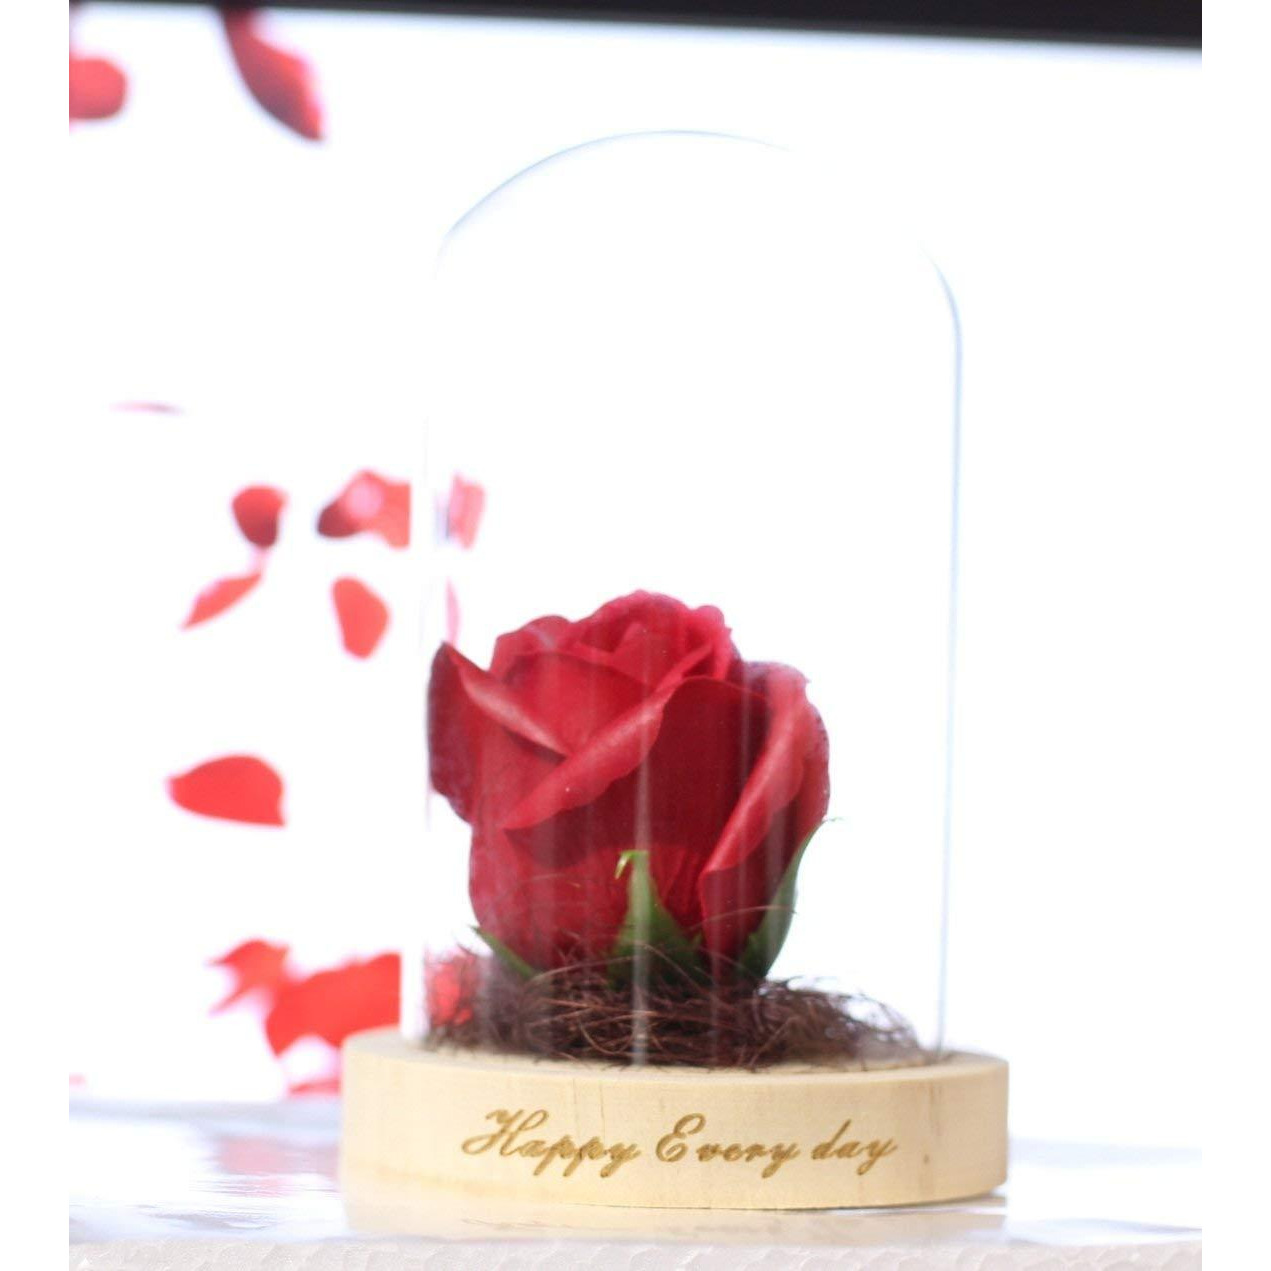 Luxury Red Rose Glass Dome With Light | Showpiece Statue For Home Decor - Bedroom Living Room | Birthday Anniversary Gifts For Girls Wife Girlfriend (Red) Best Home Decor Showpiece Figurine